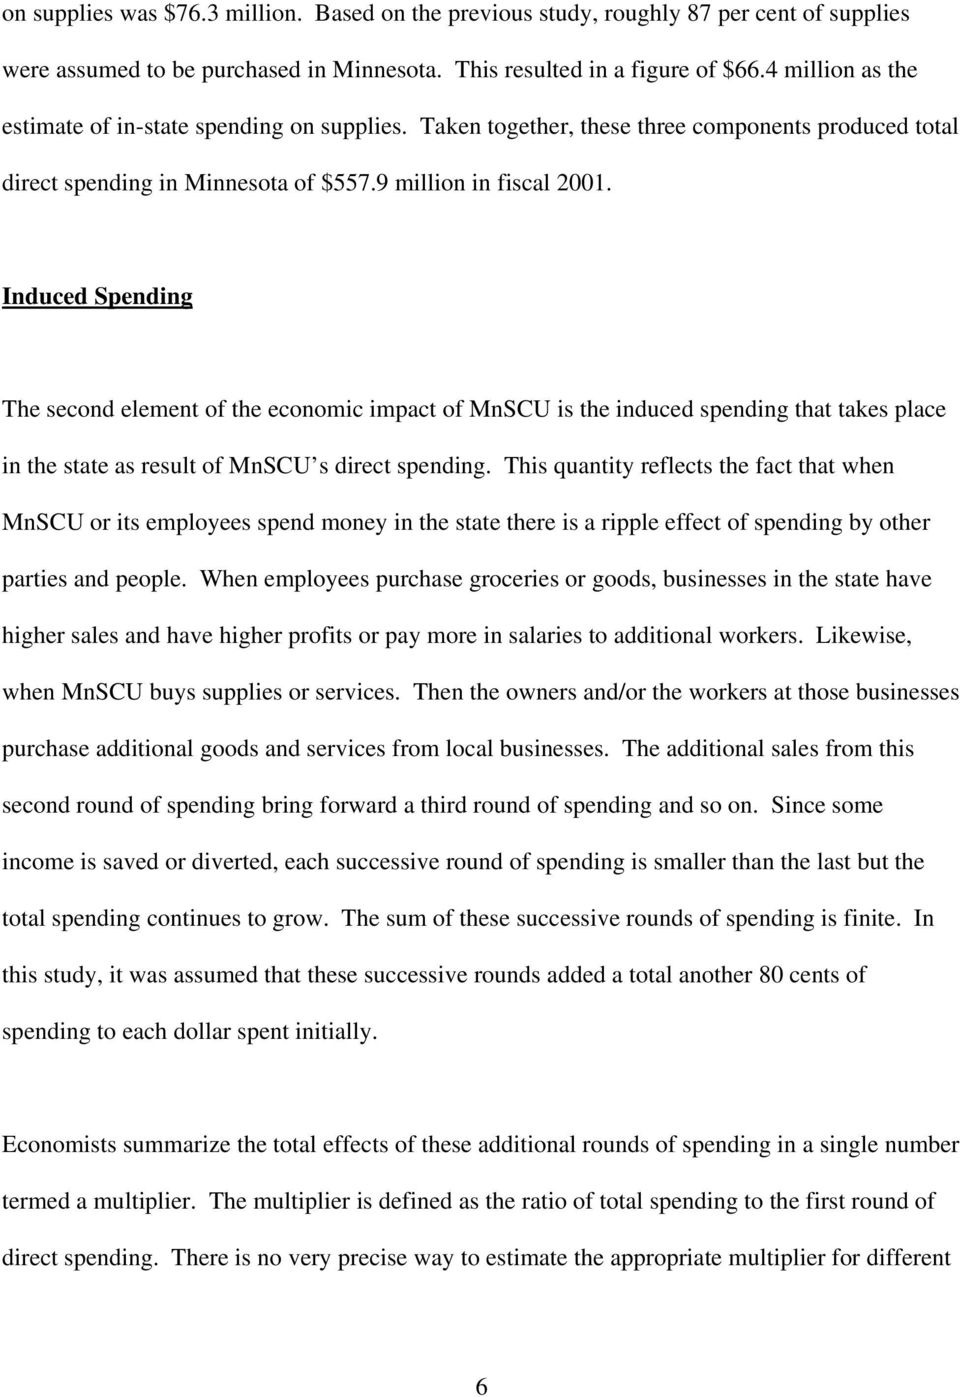 Induced Spending The second element of the economic impact of MnSCU is the induced spending that takes place in the state as result of MnSCU s direct spending.